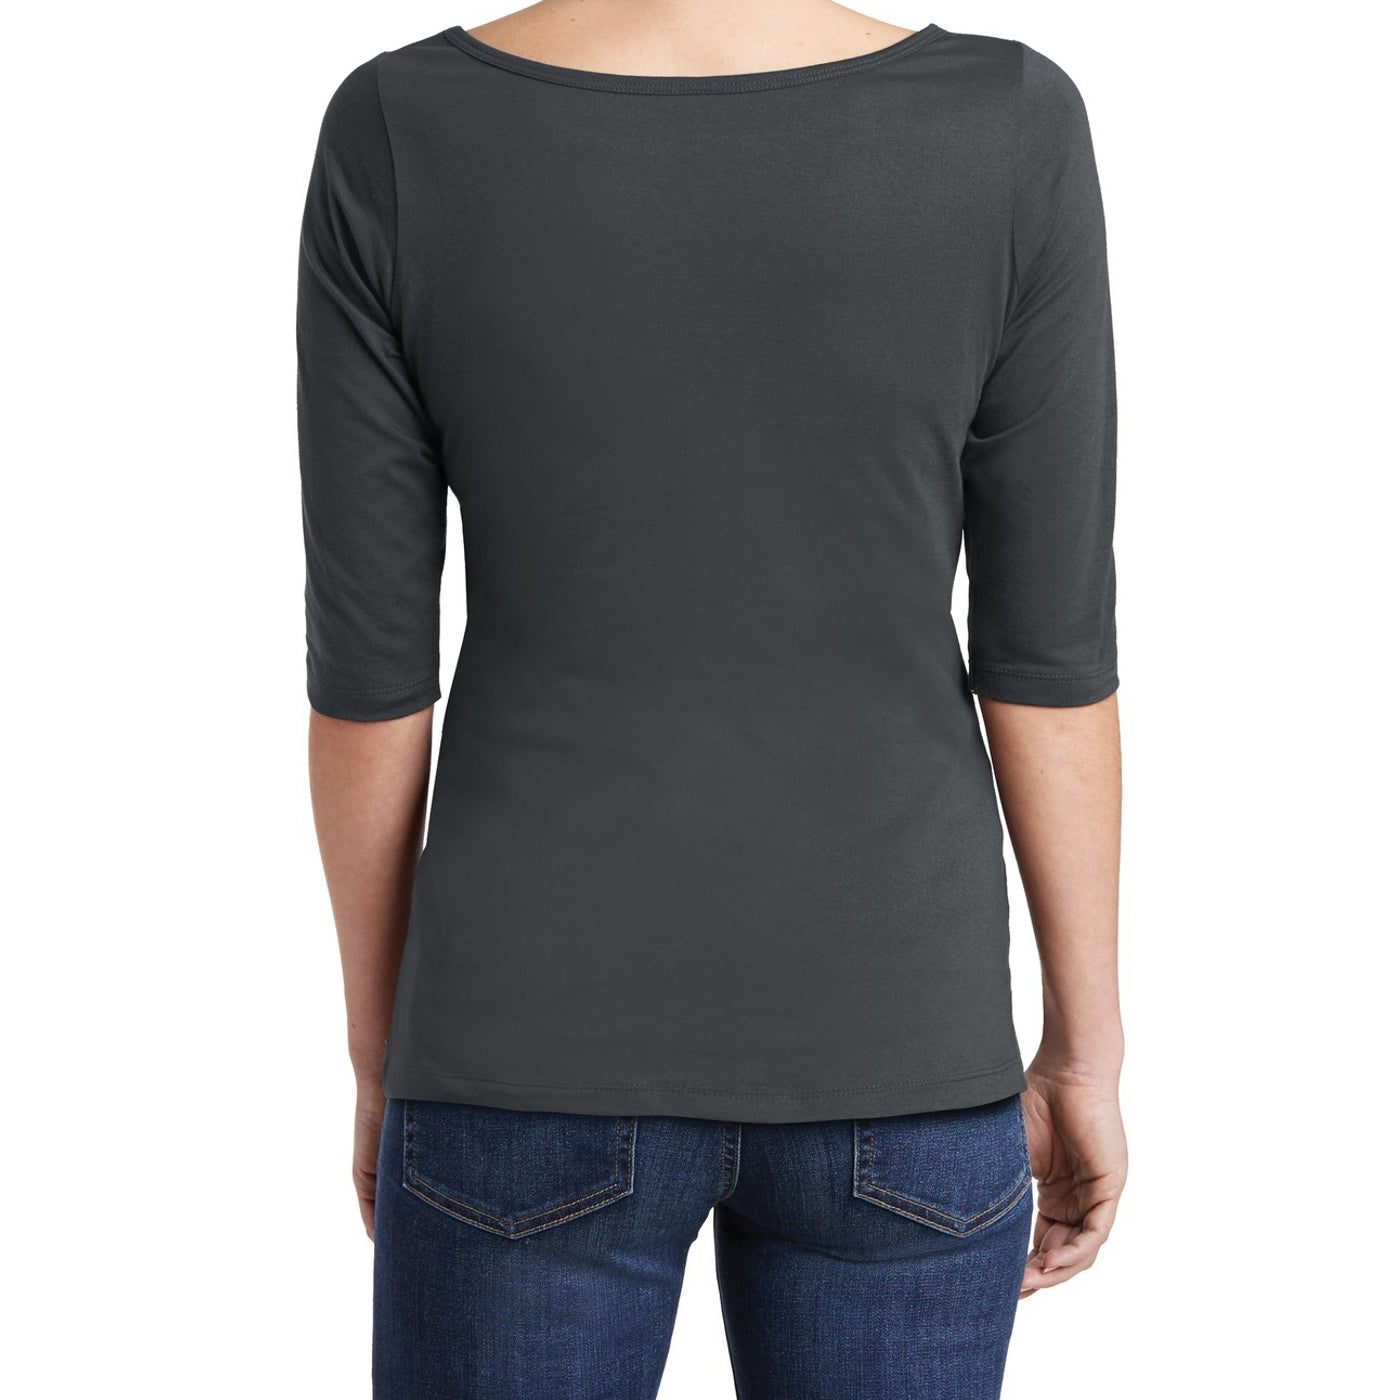 Women's Perfect Weight 3/4-Sleeve Tee - Charcoal